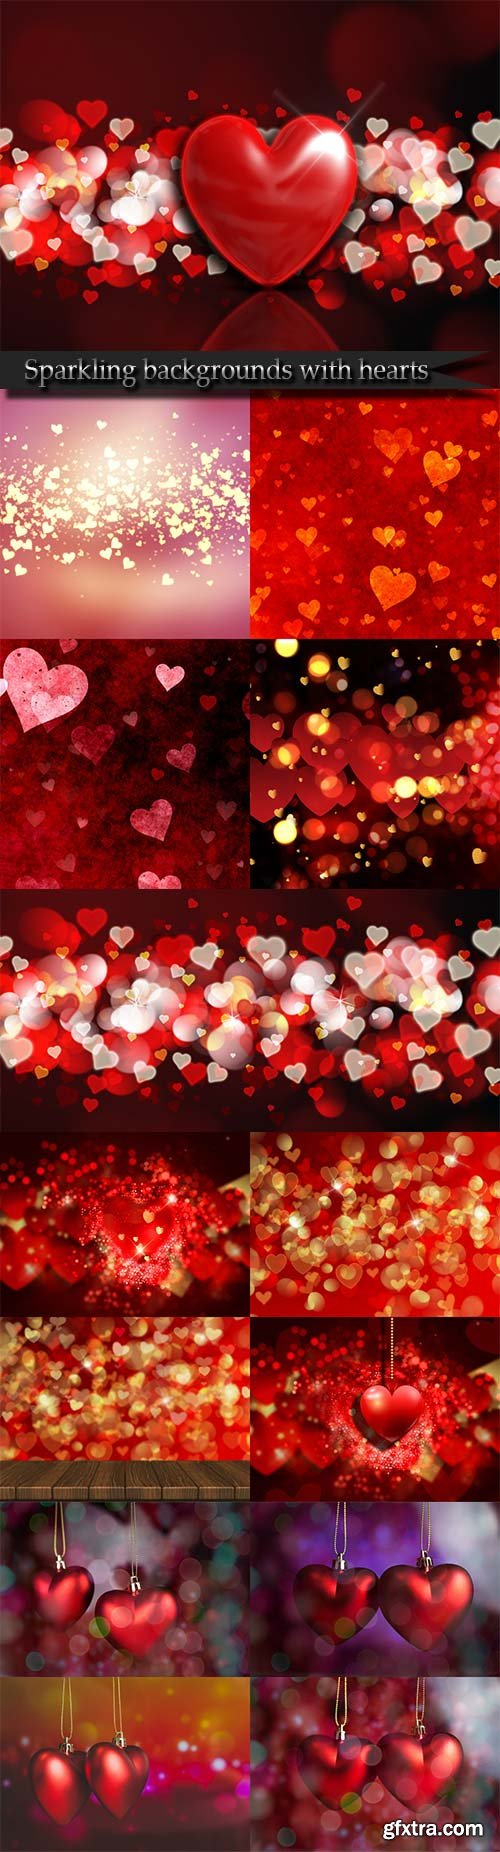 Sparkling backgrounds with hearts